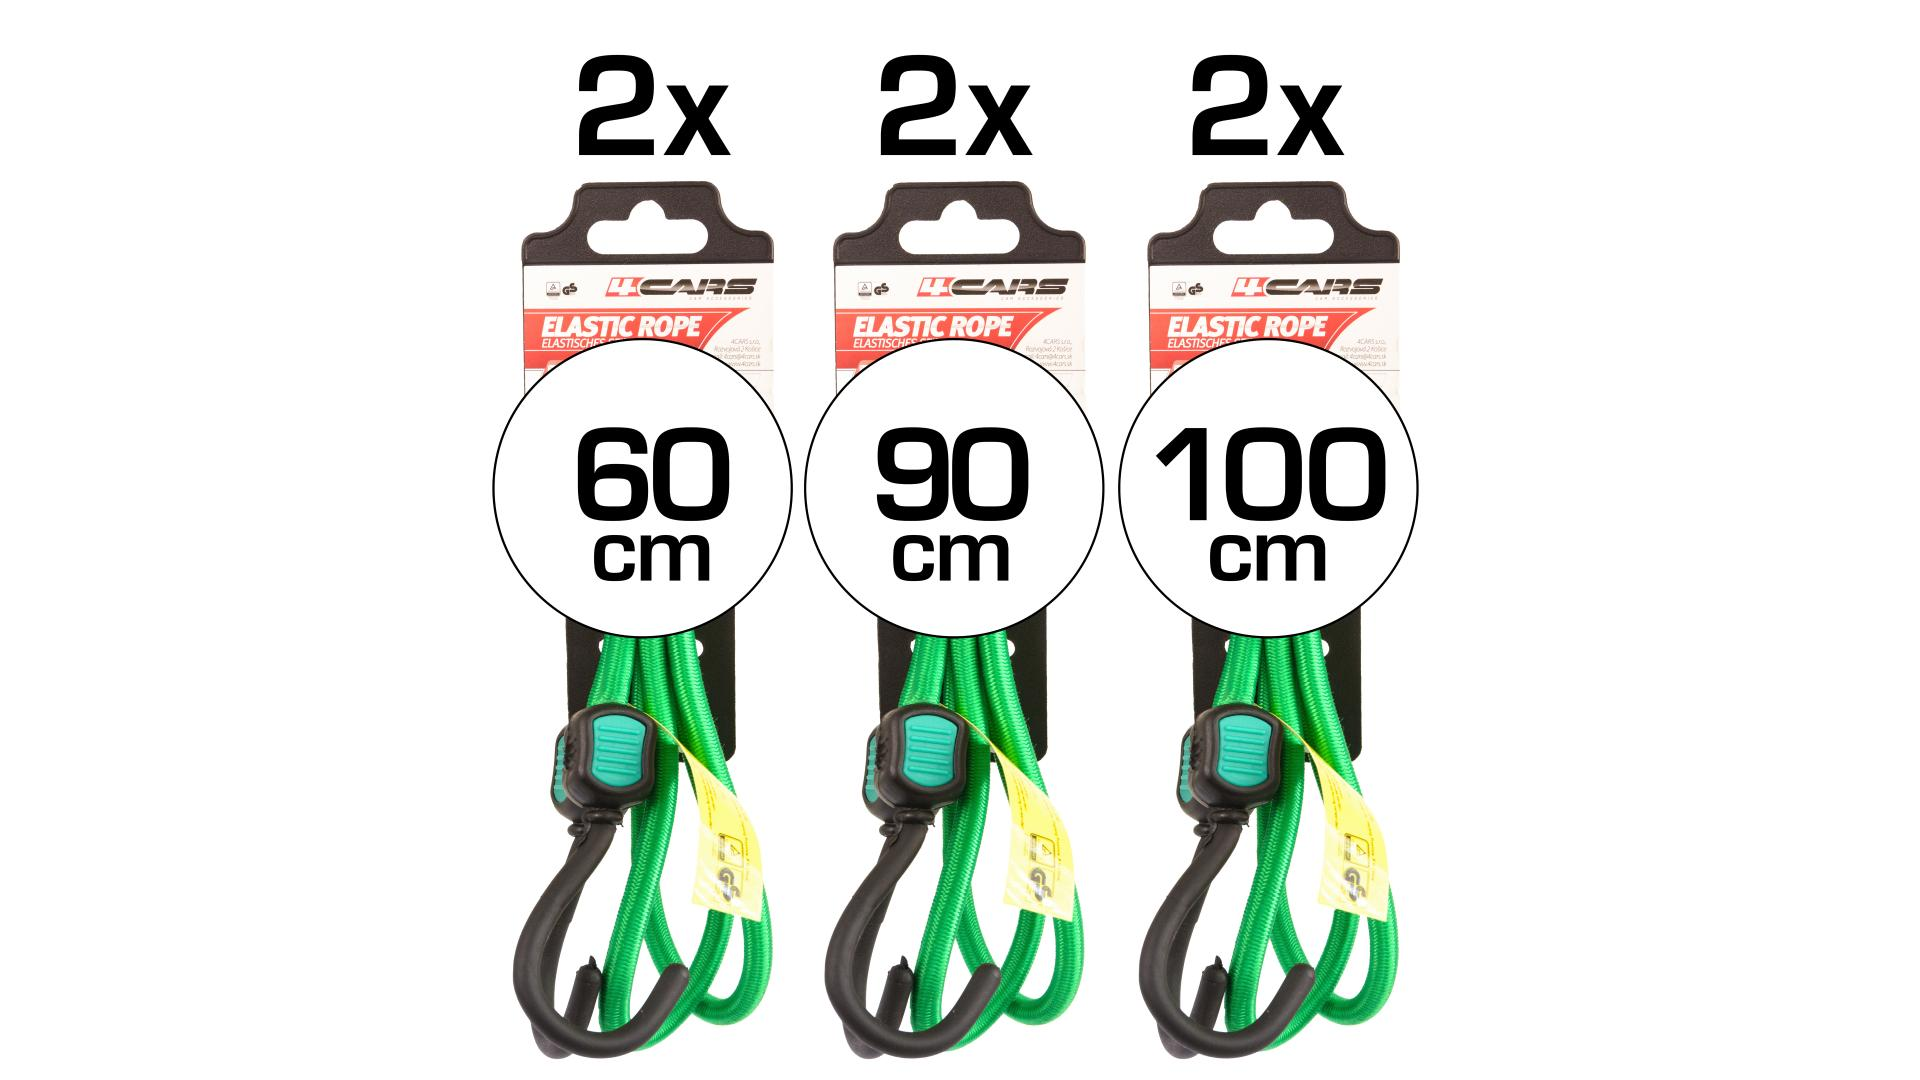 4CARS 6-pieces set of Bungee cords TUV GS 100/90/60 cm